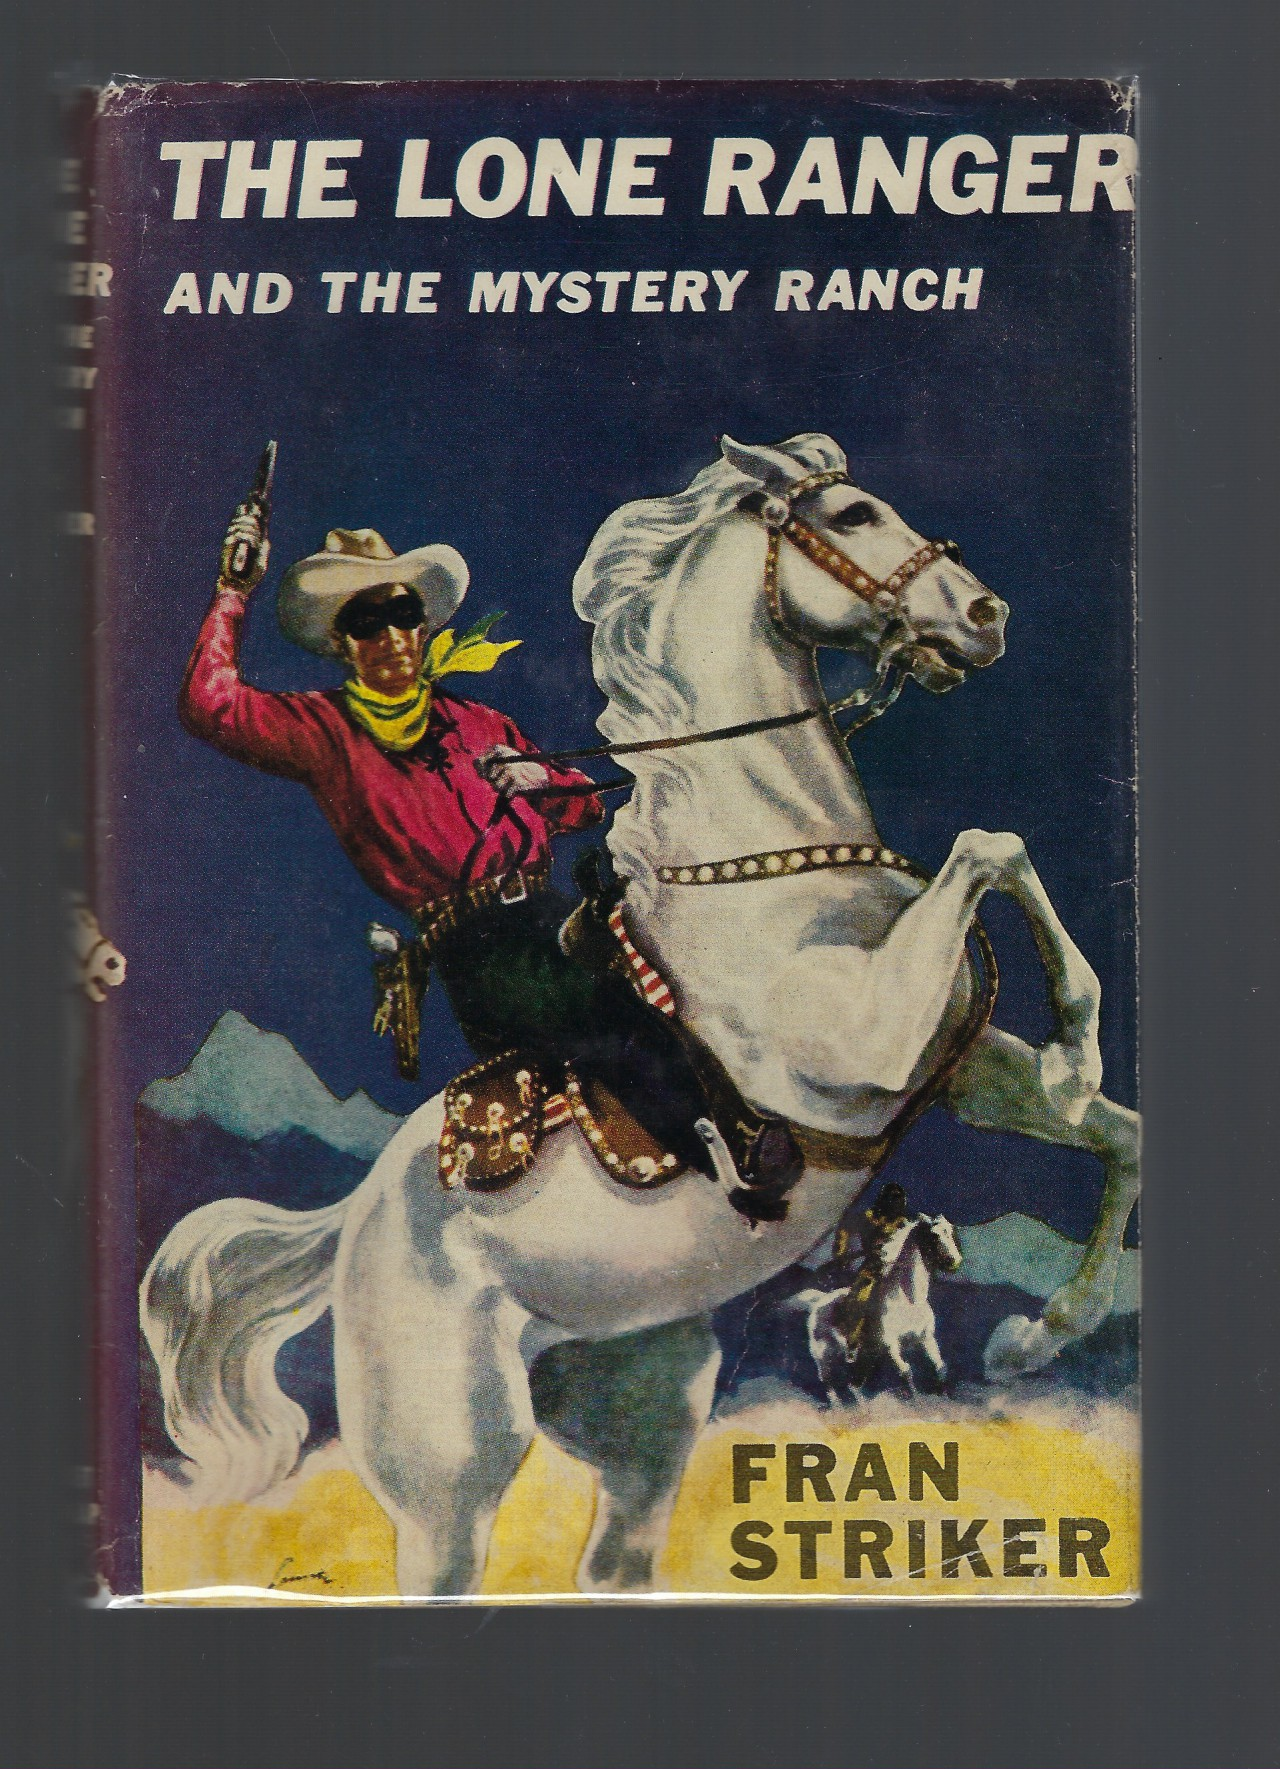 Lone Ranger and the Mystery Ranch #2 HB/DJ, Fran Striker